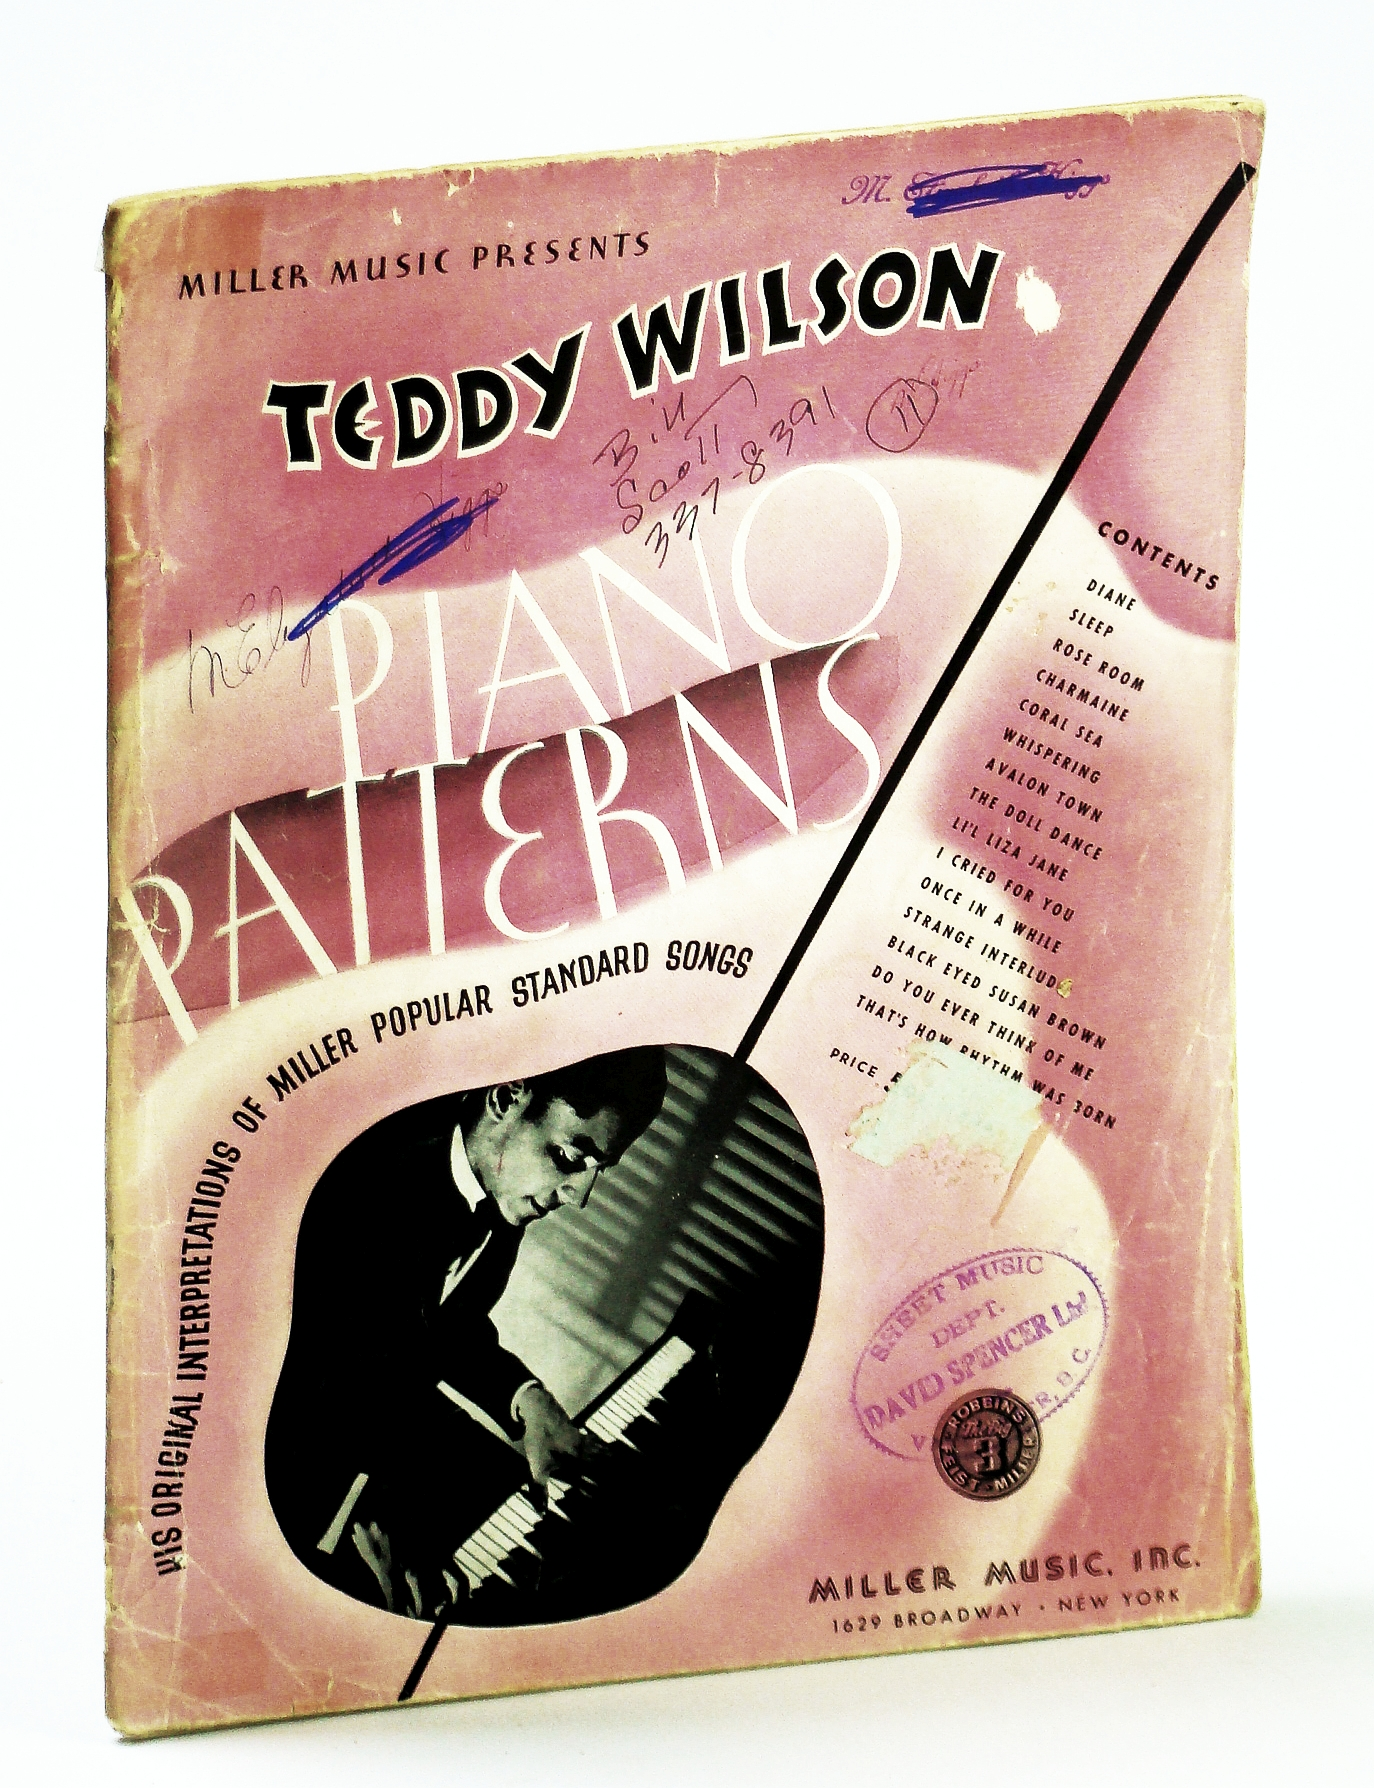 Image for Teddy Wilson Piano Patterns - His Original Interpretations of Miller Popular Standard Songs: Piano Sheet Music